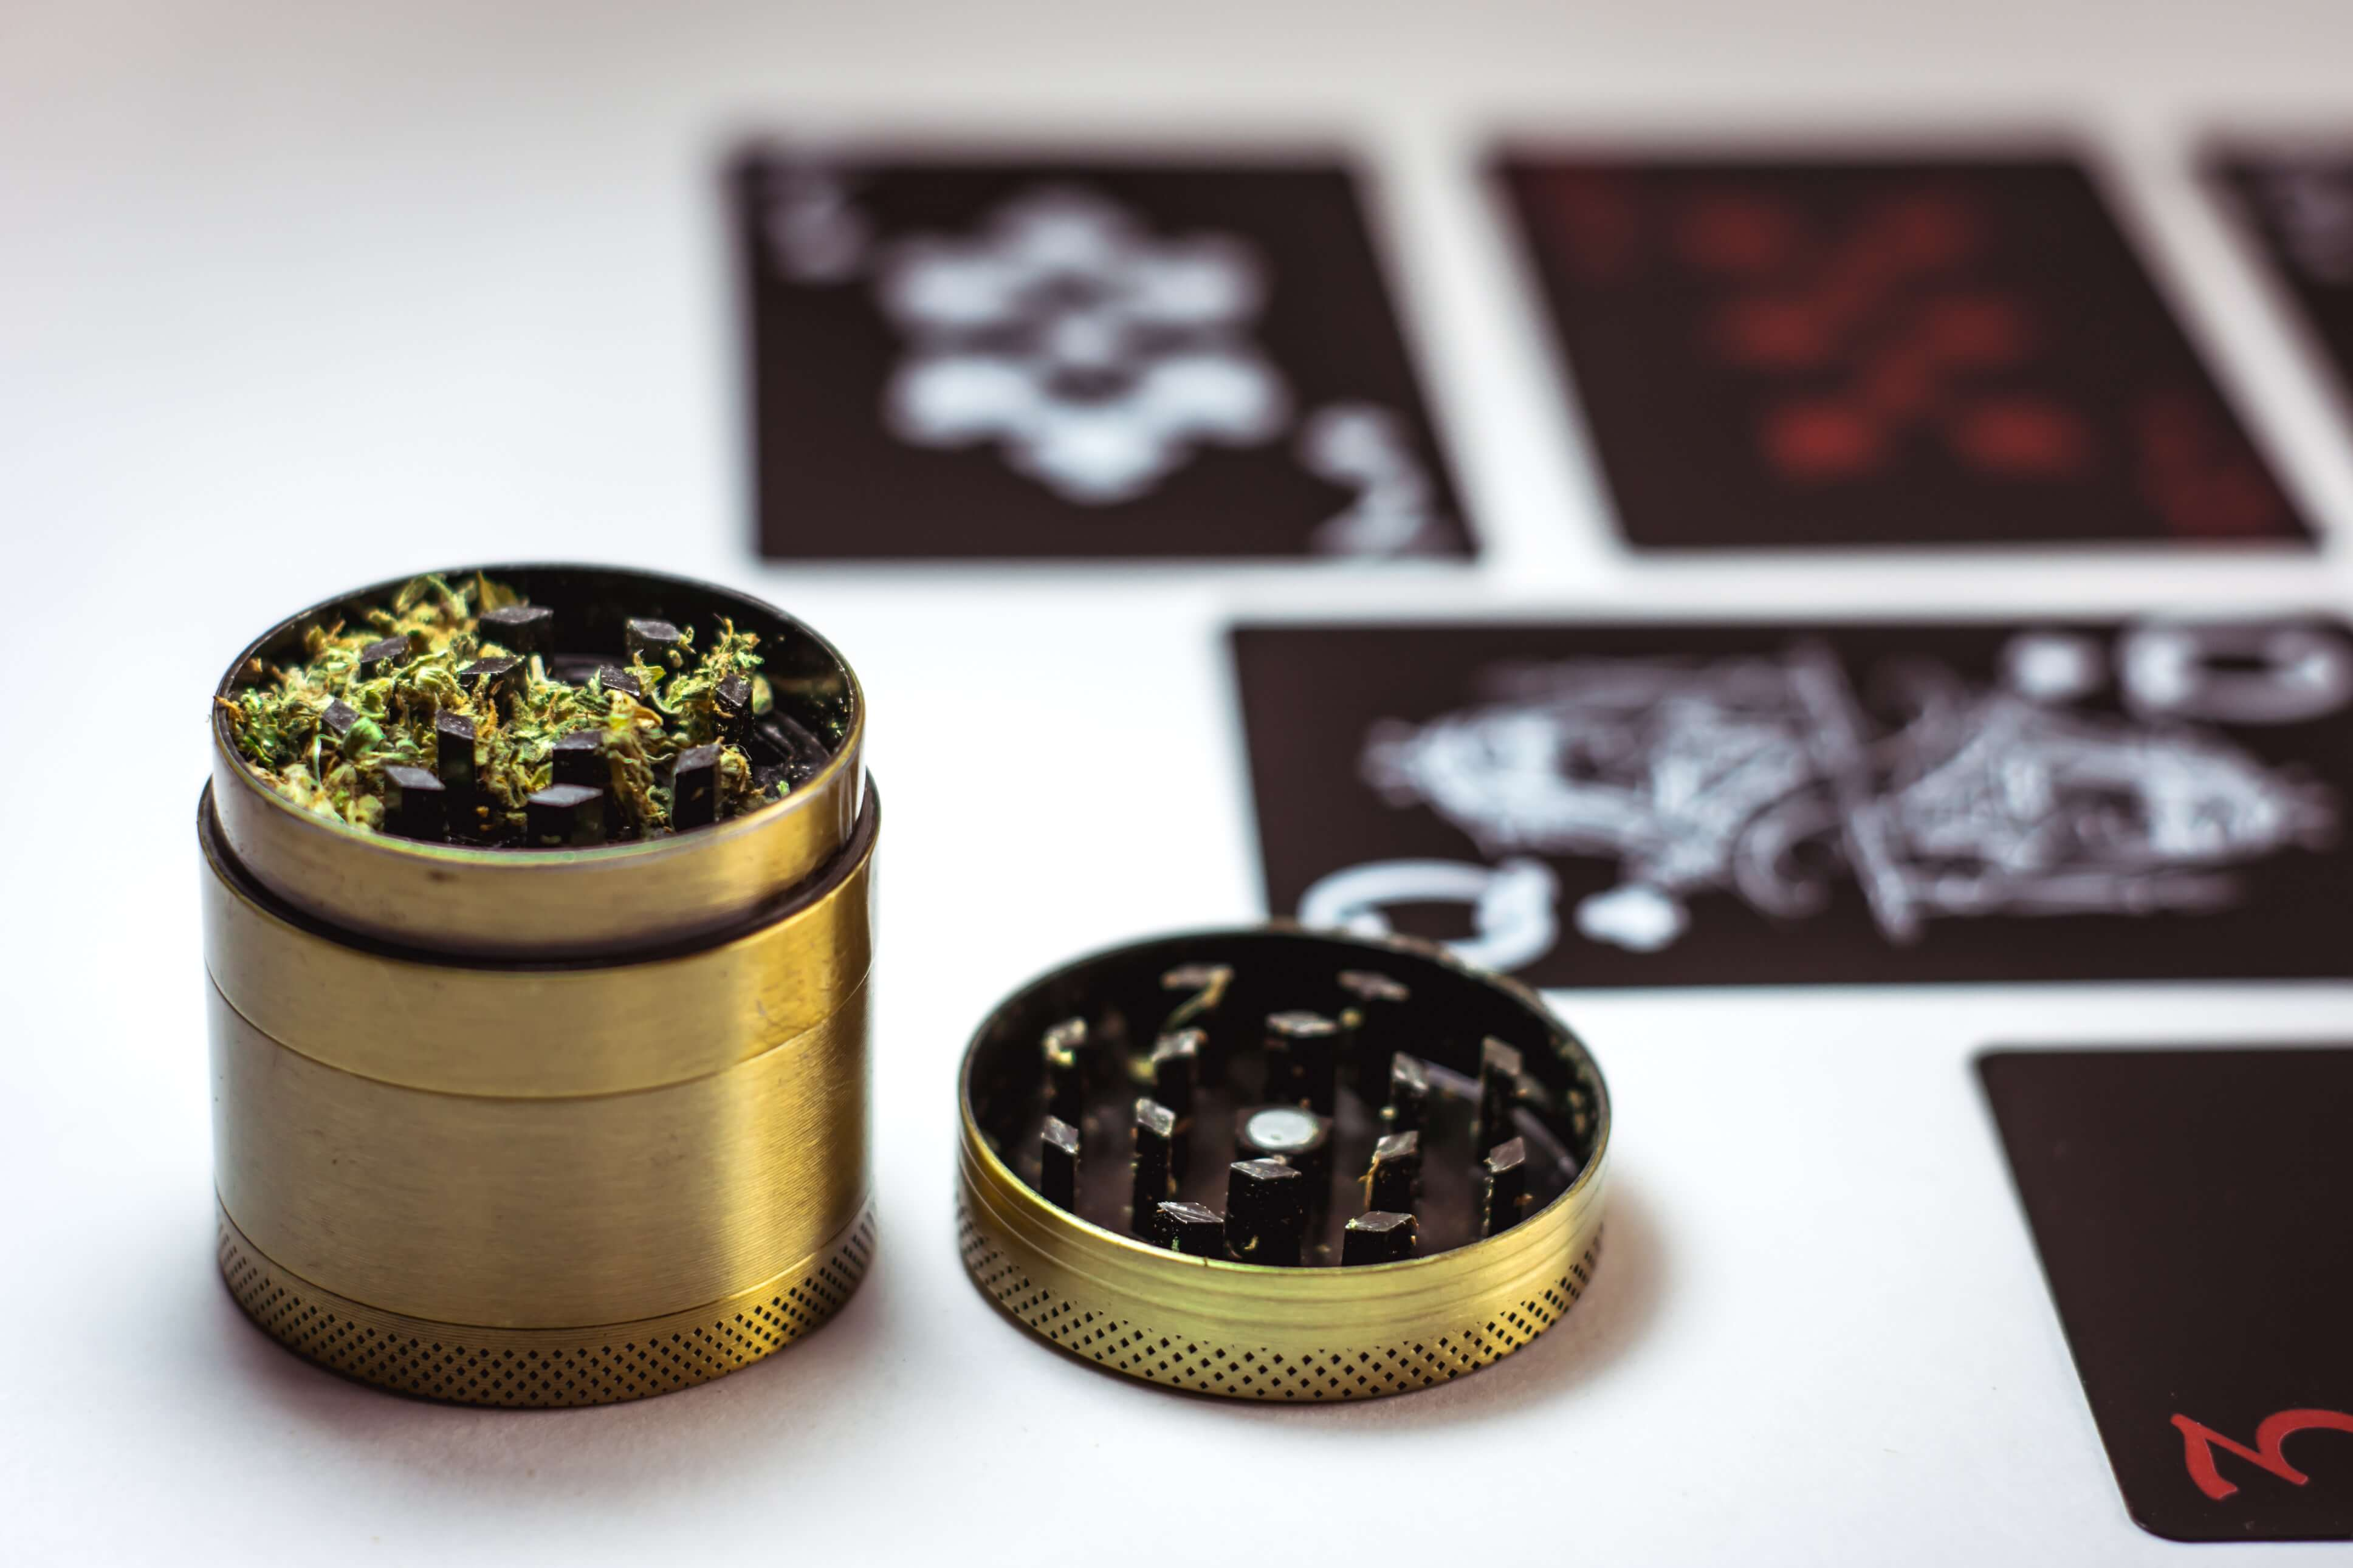 What Are The Best Herb Grinders For Cannabis